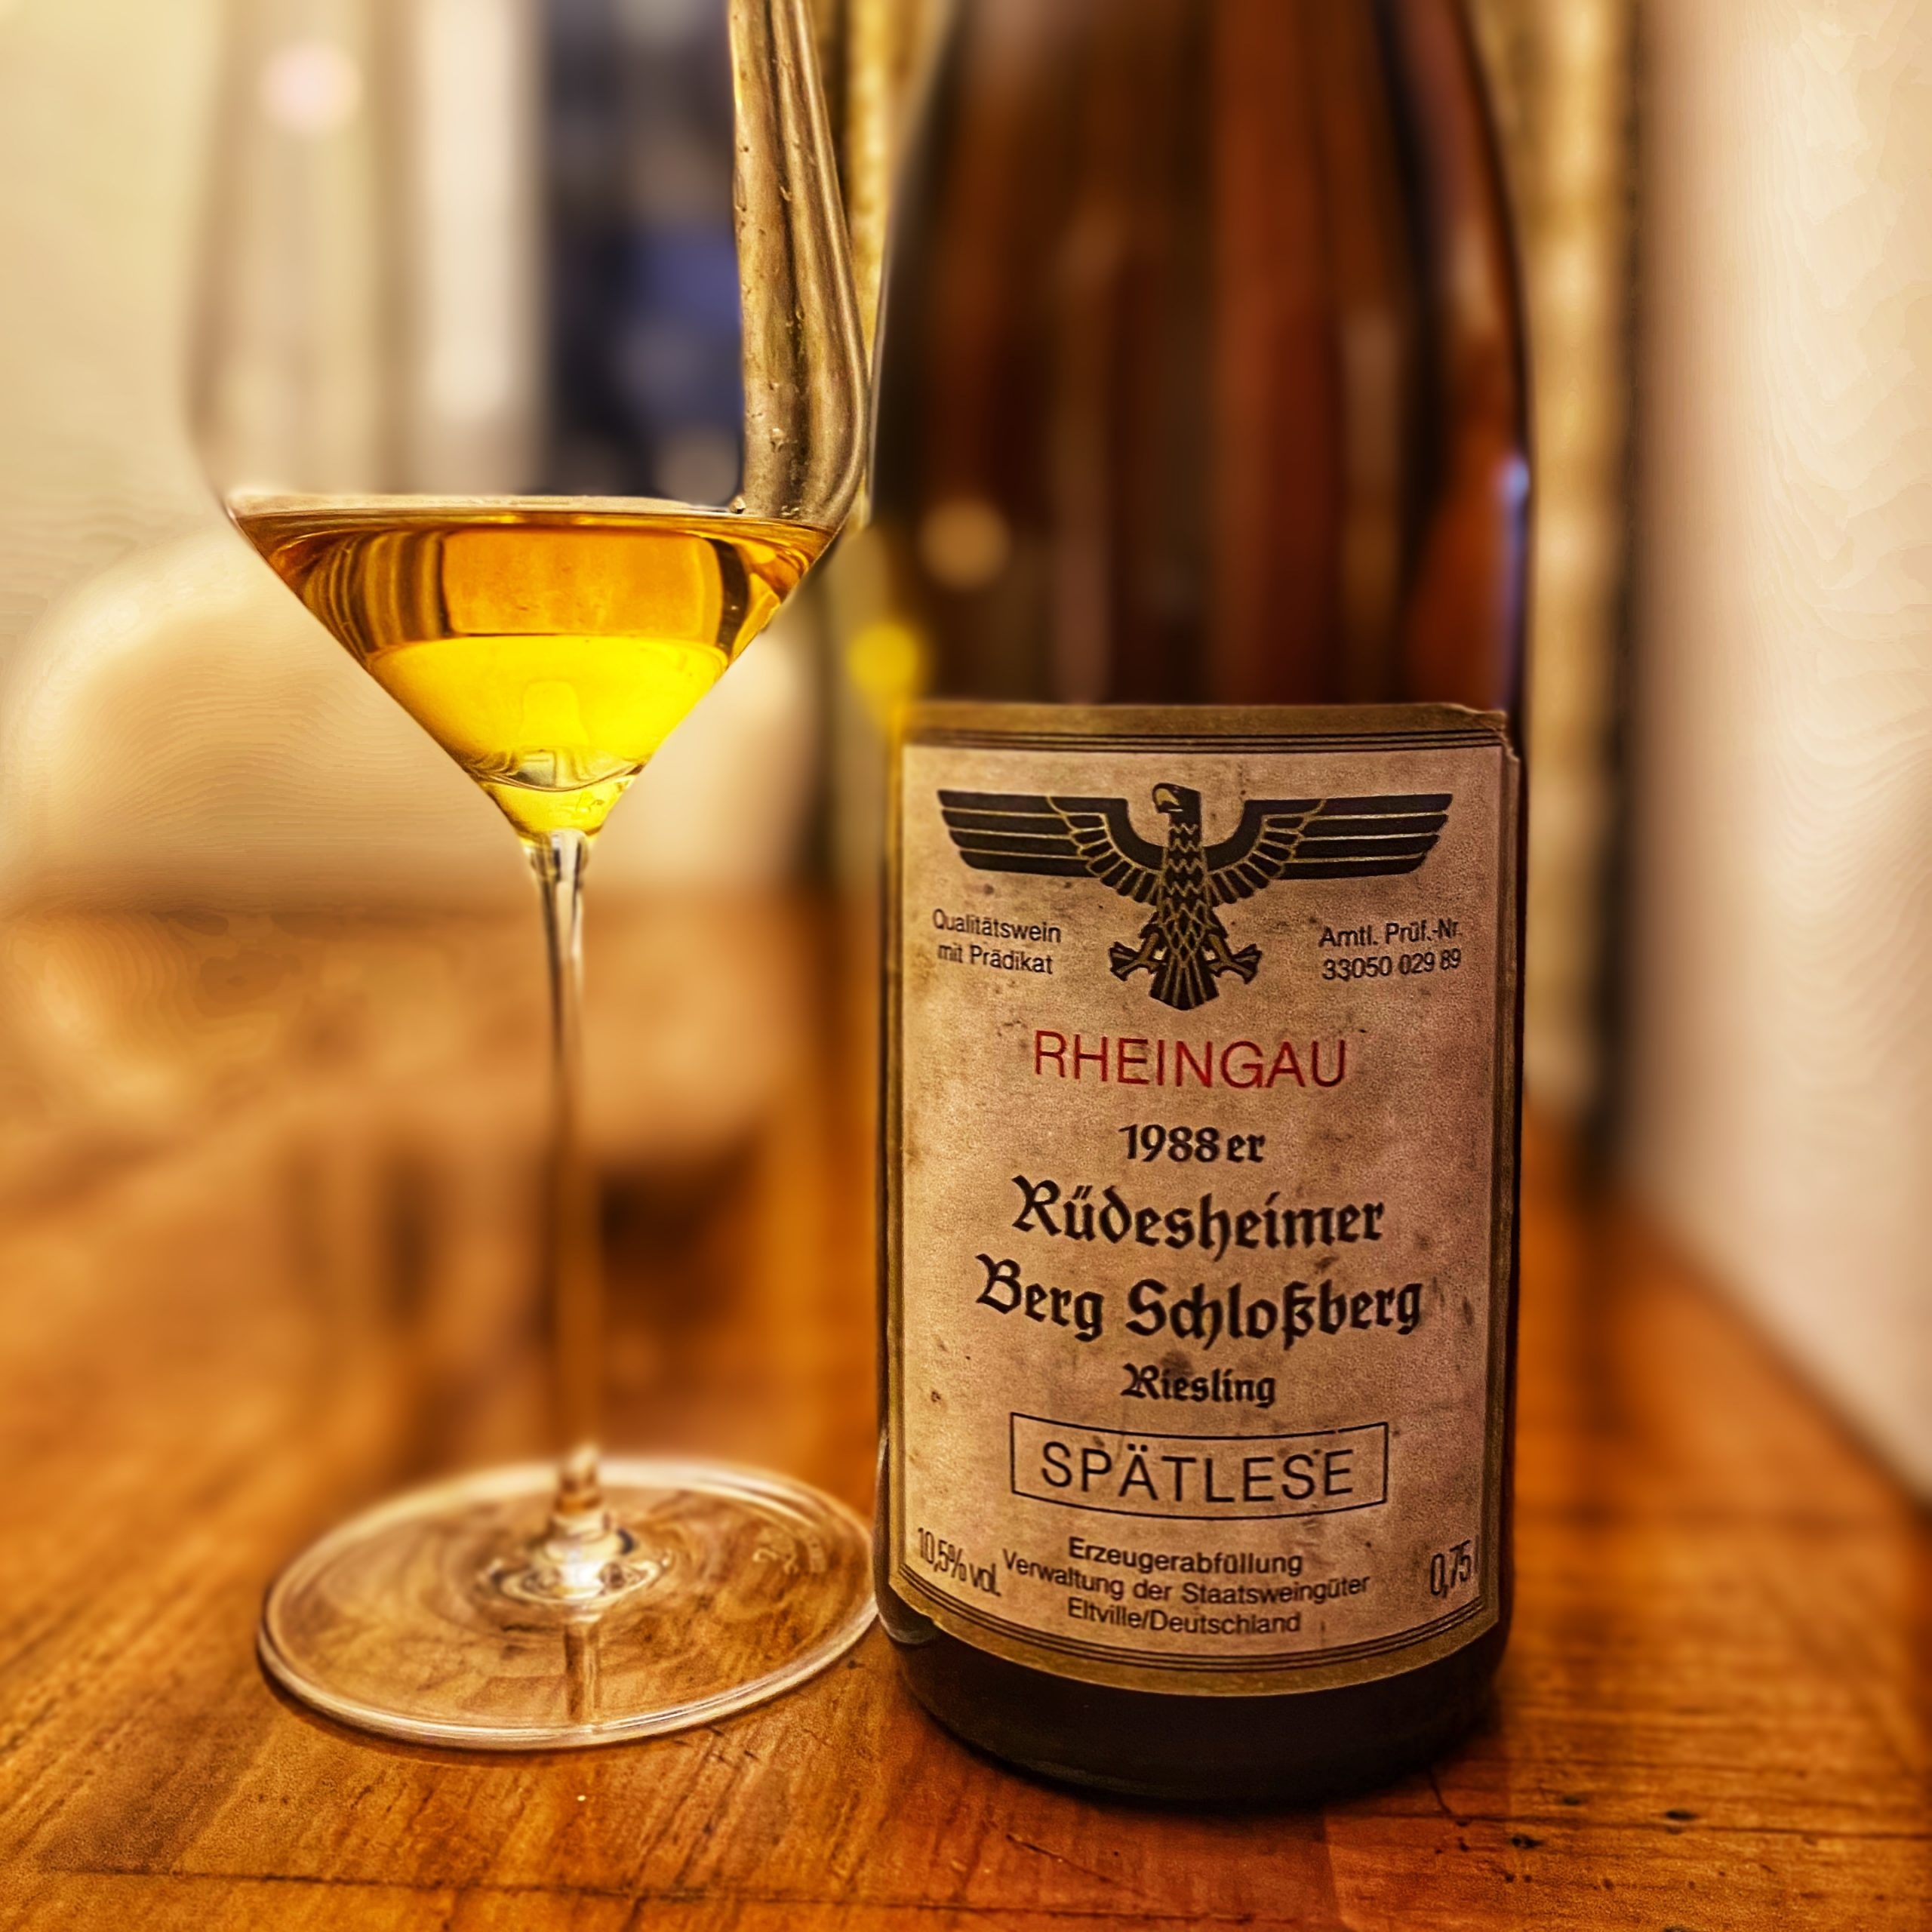 You are currently viewing Spaetlese Schlossberg 1988